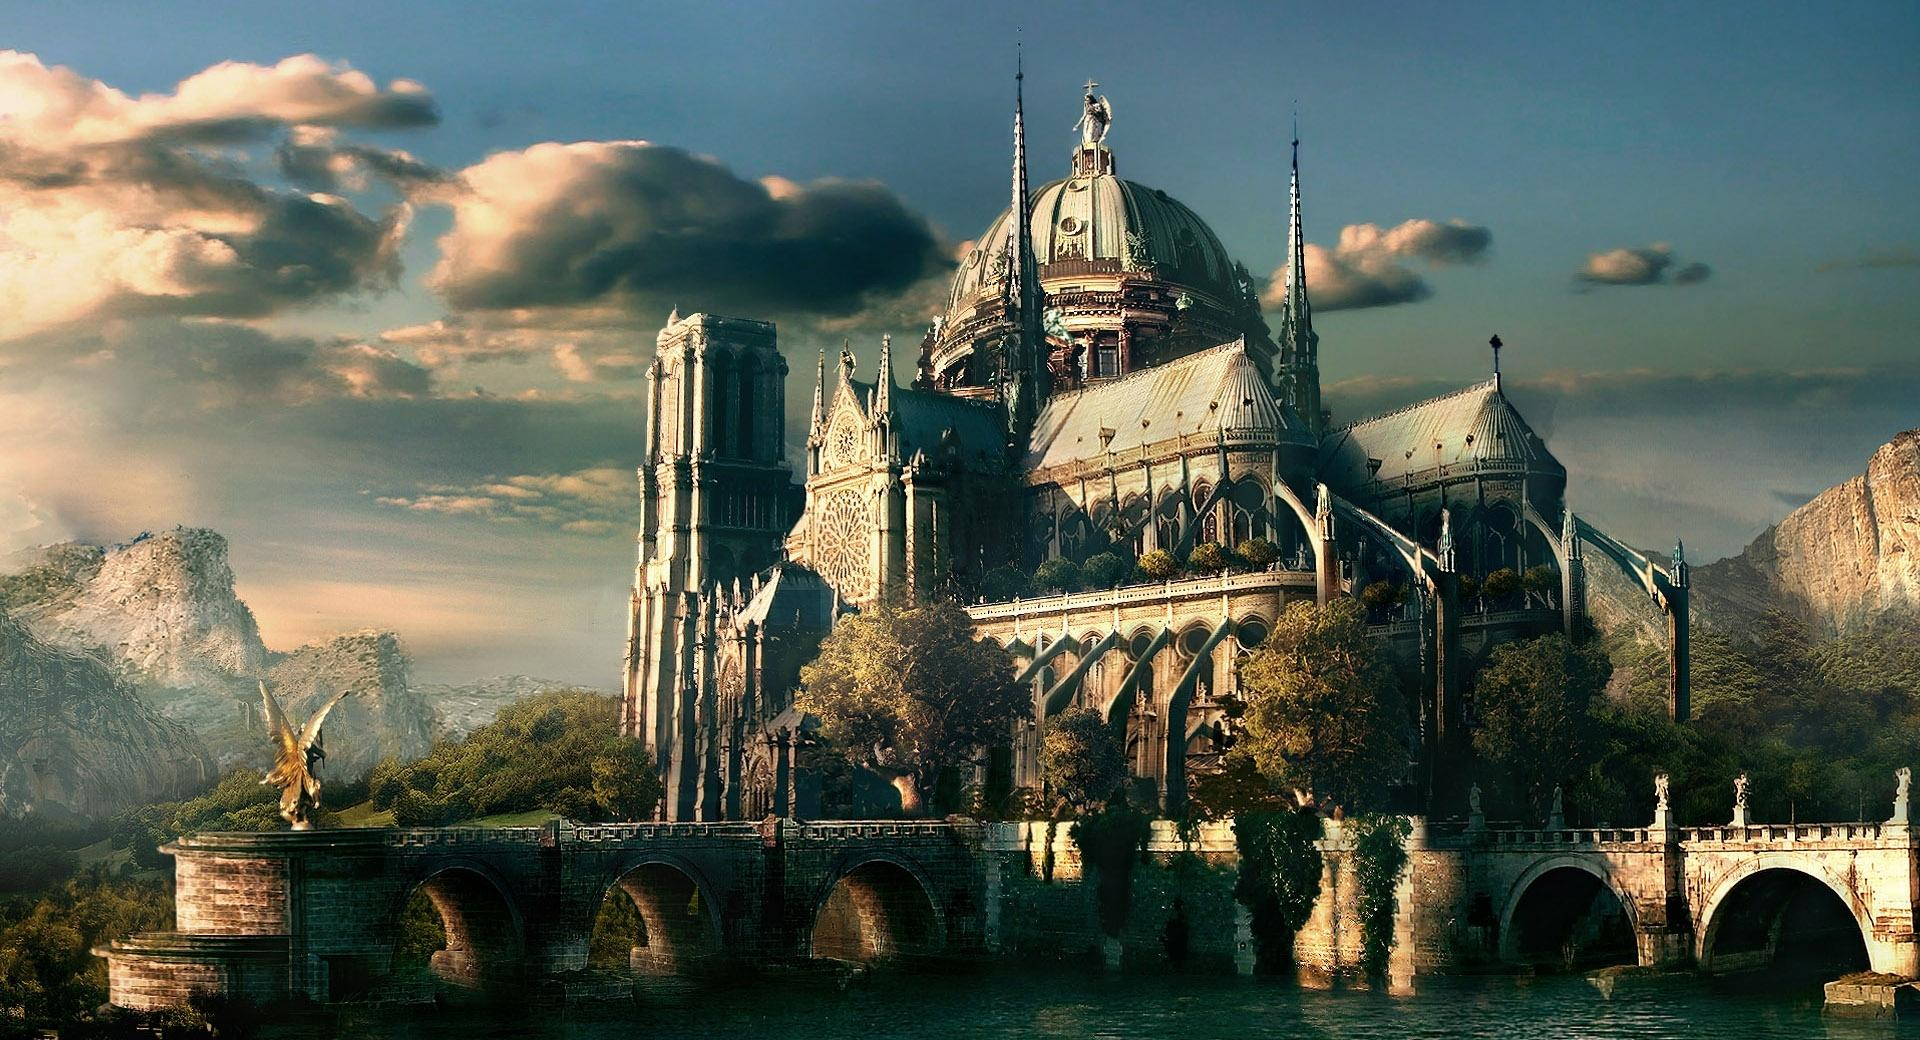 Angels Castle wallpapers HD quality